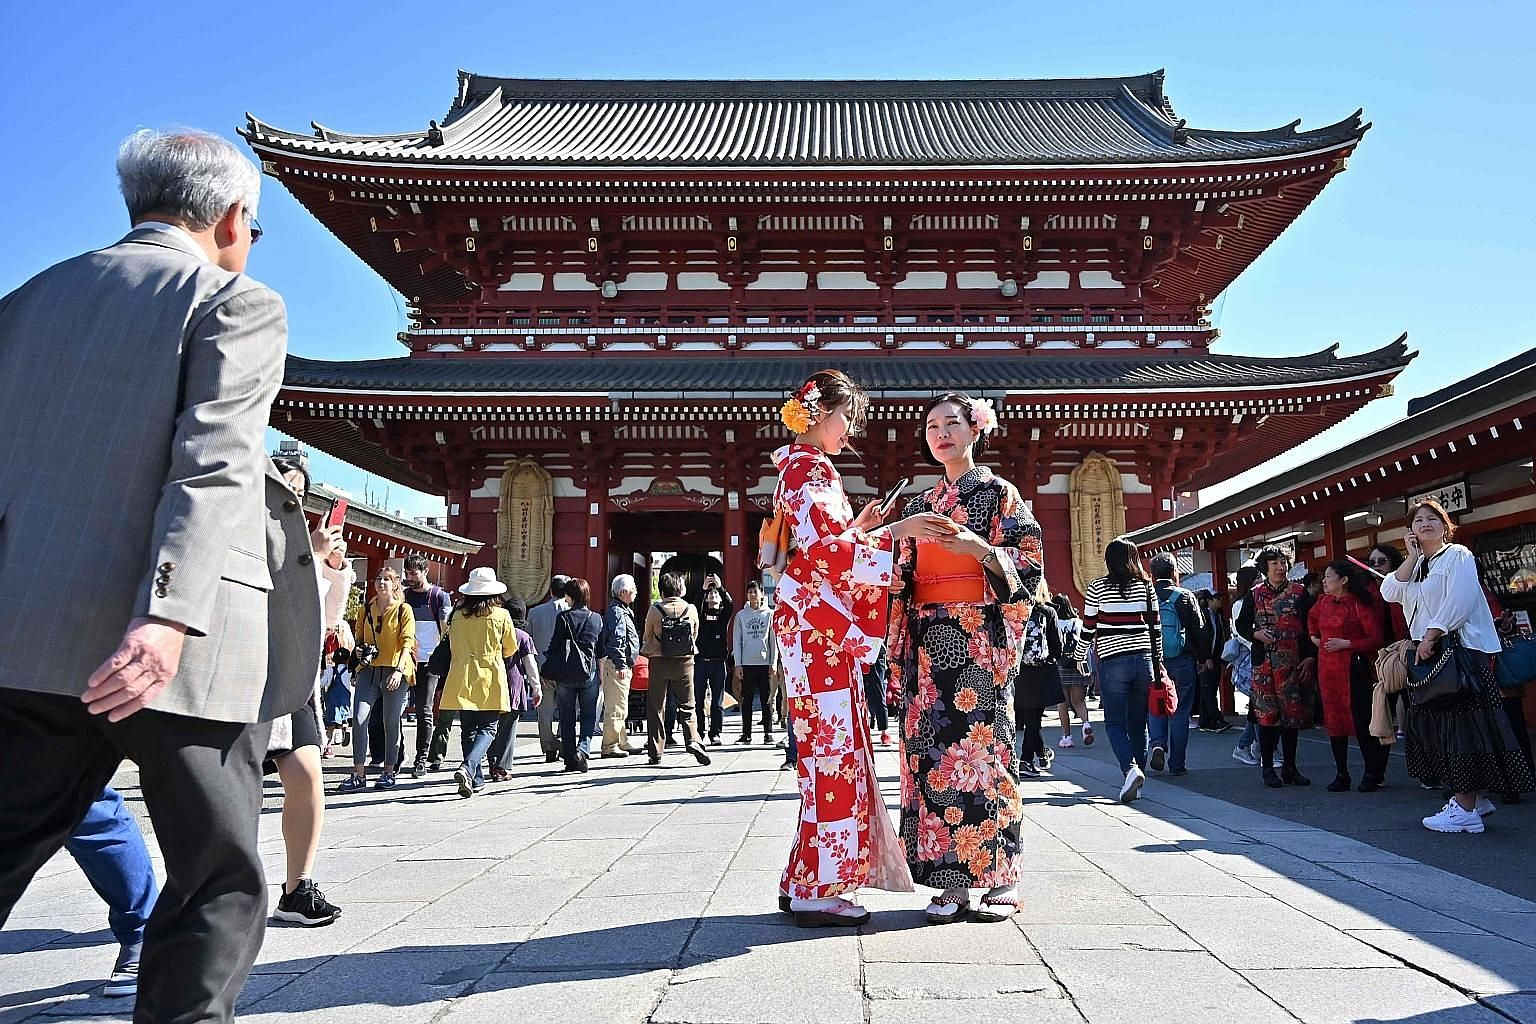 As Japan enters the Reiwa imperial era on May 1, the country needs to be economically strong and optimistic about the future, if it is to resist succumbing to fatalism about living in a China-dominated region, says the writer.